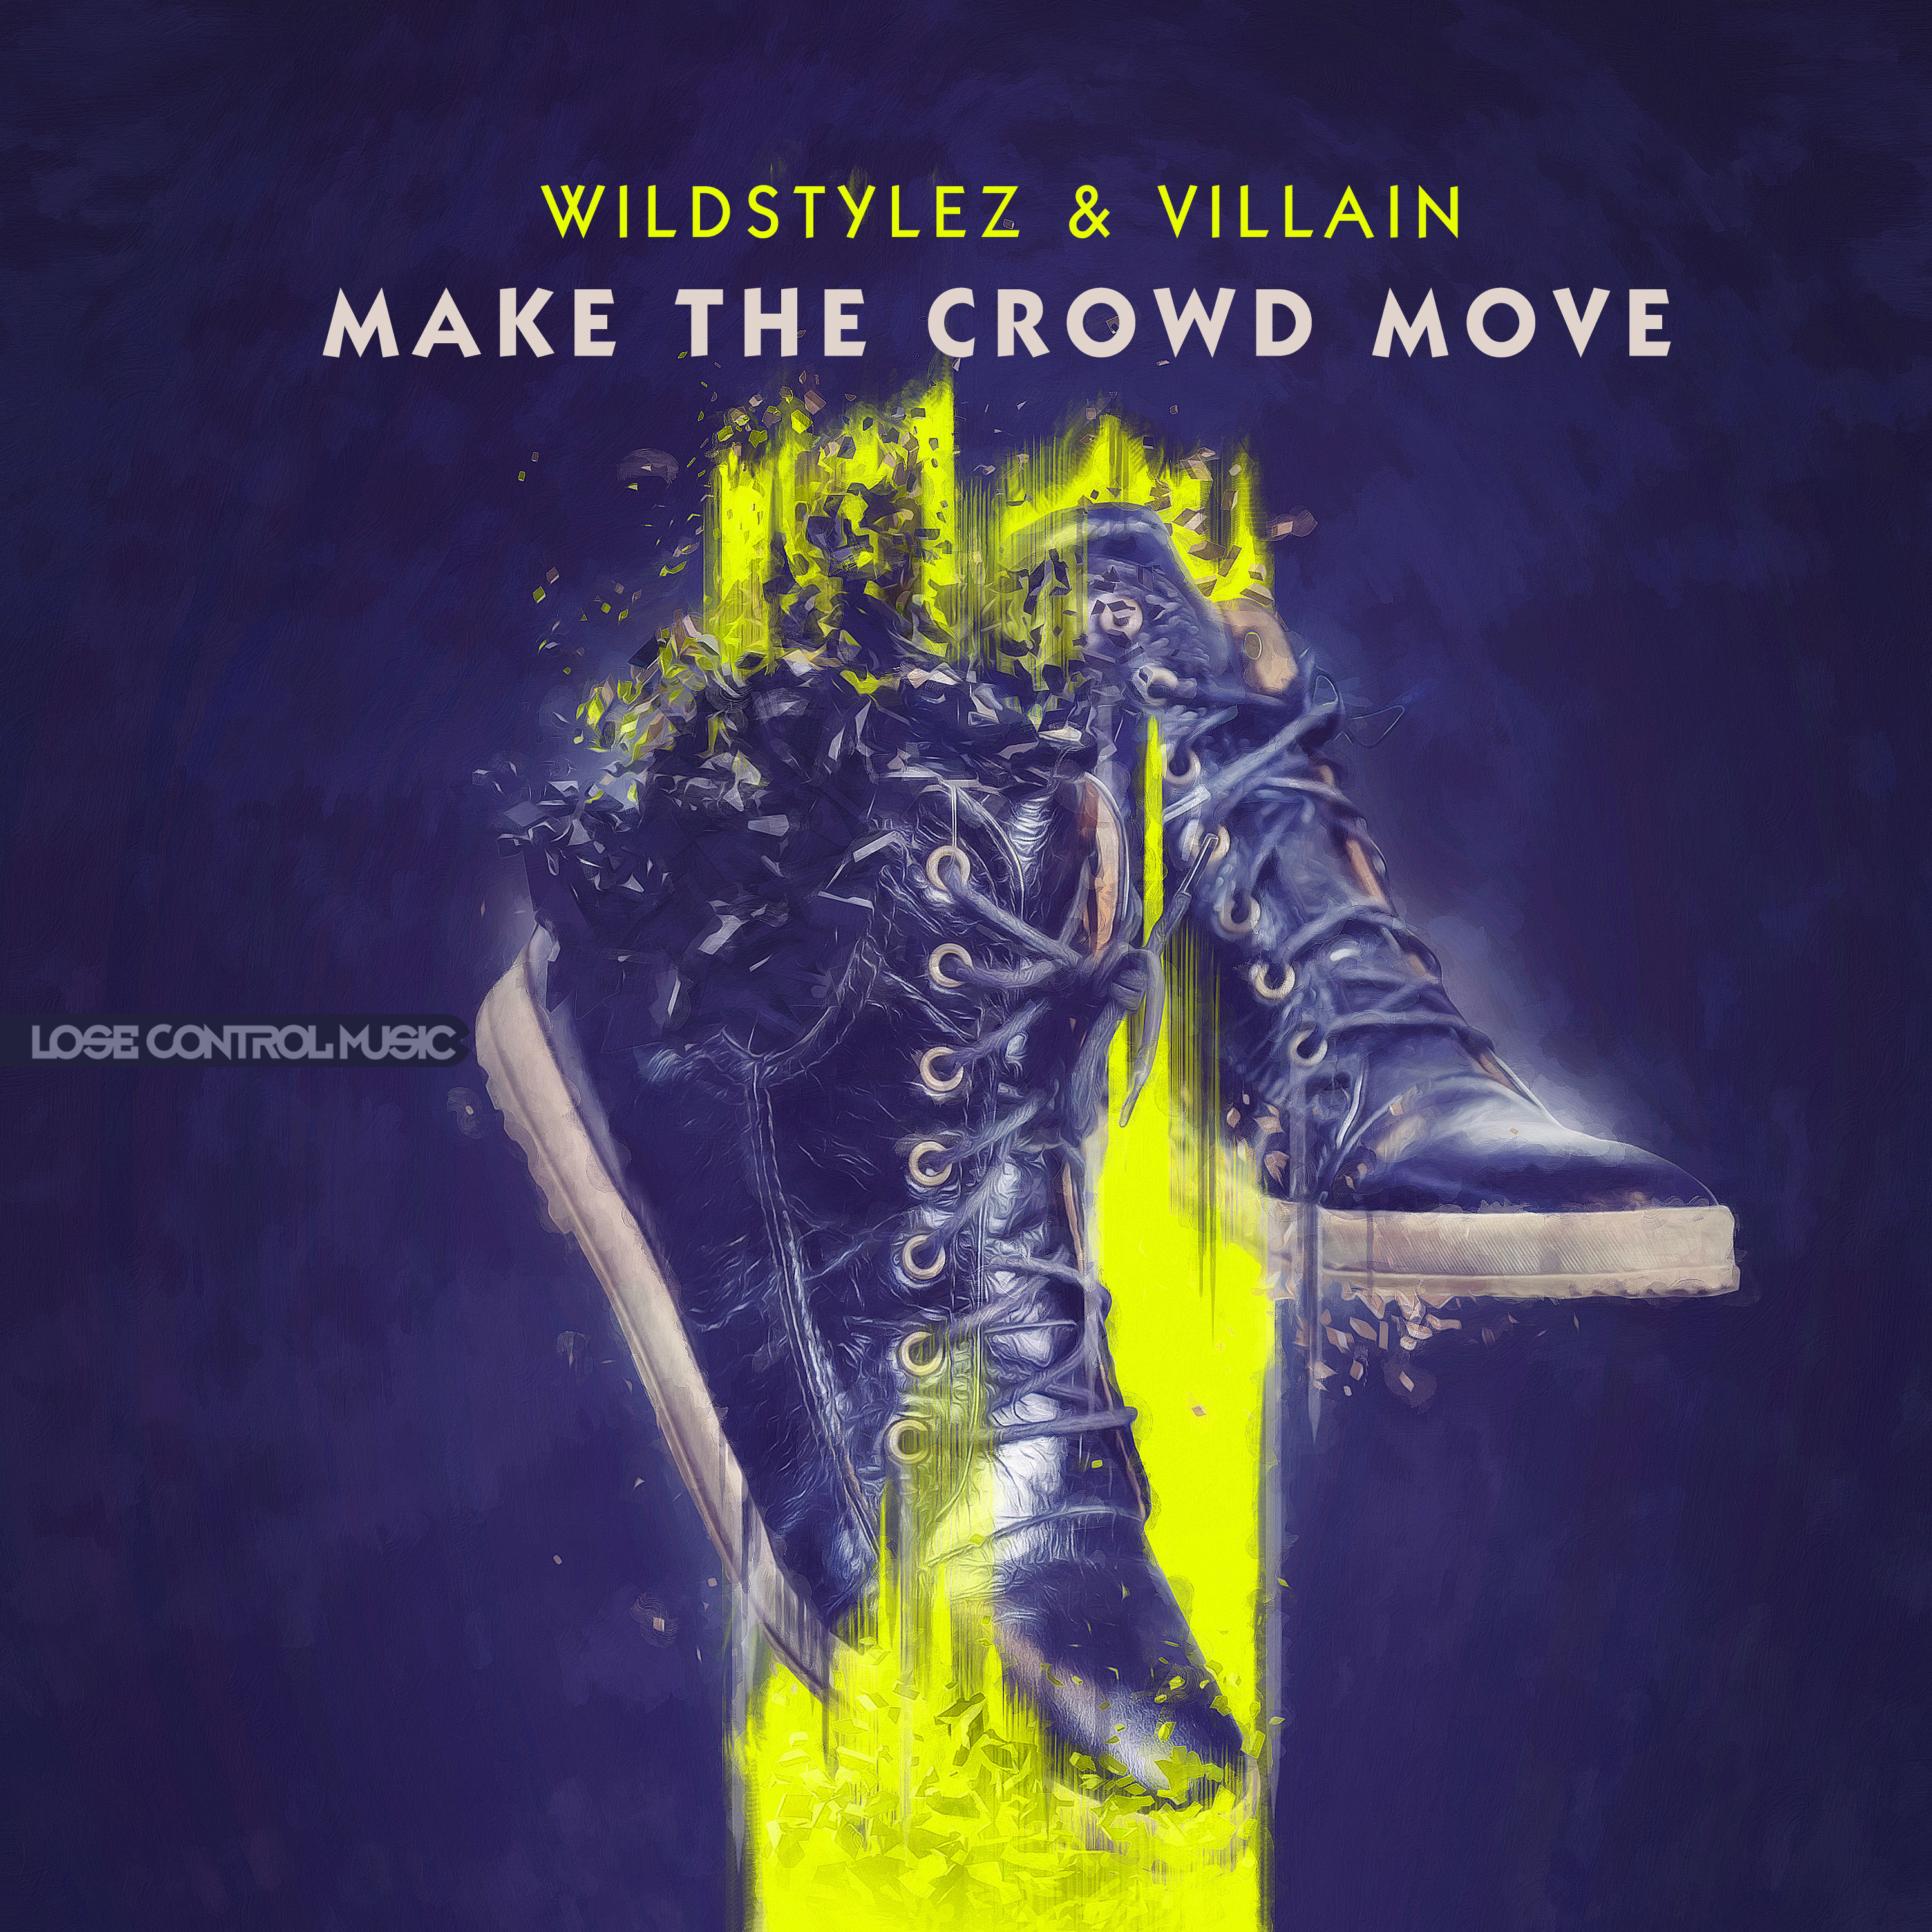 Wildstylez & Villain - Make The Crowd Move [LOSE CONTROL MUSIC] LCM025